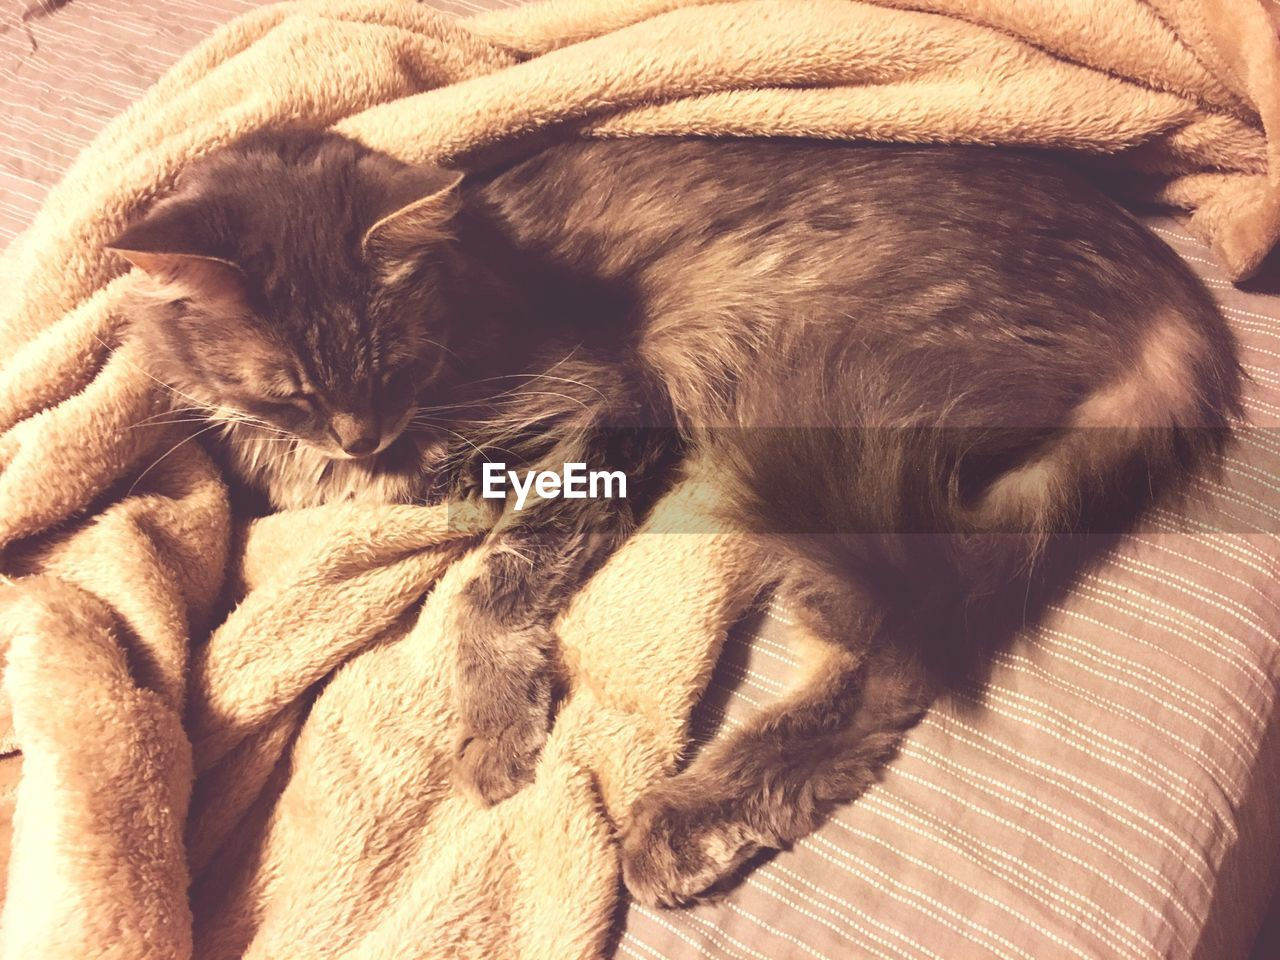 one animal, pets, animal themes, domestic animals, relaxation, domestic cat, indoors, mammal, sleeping, no people, feline, close-up, day